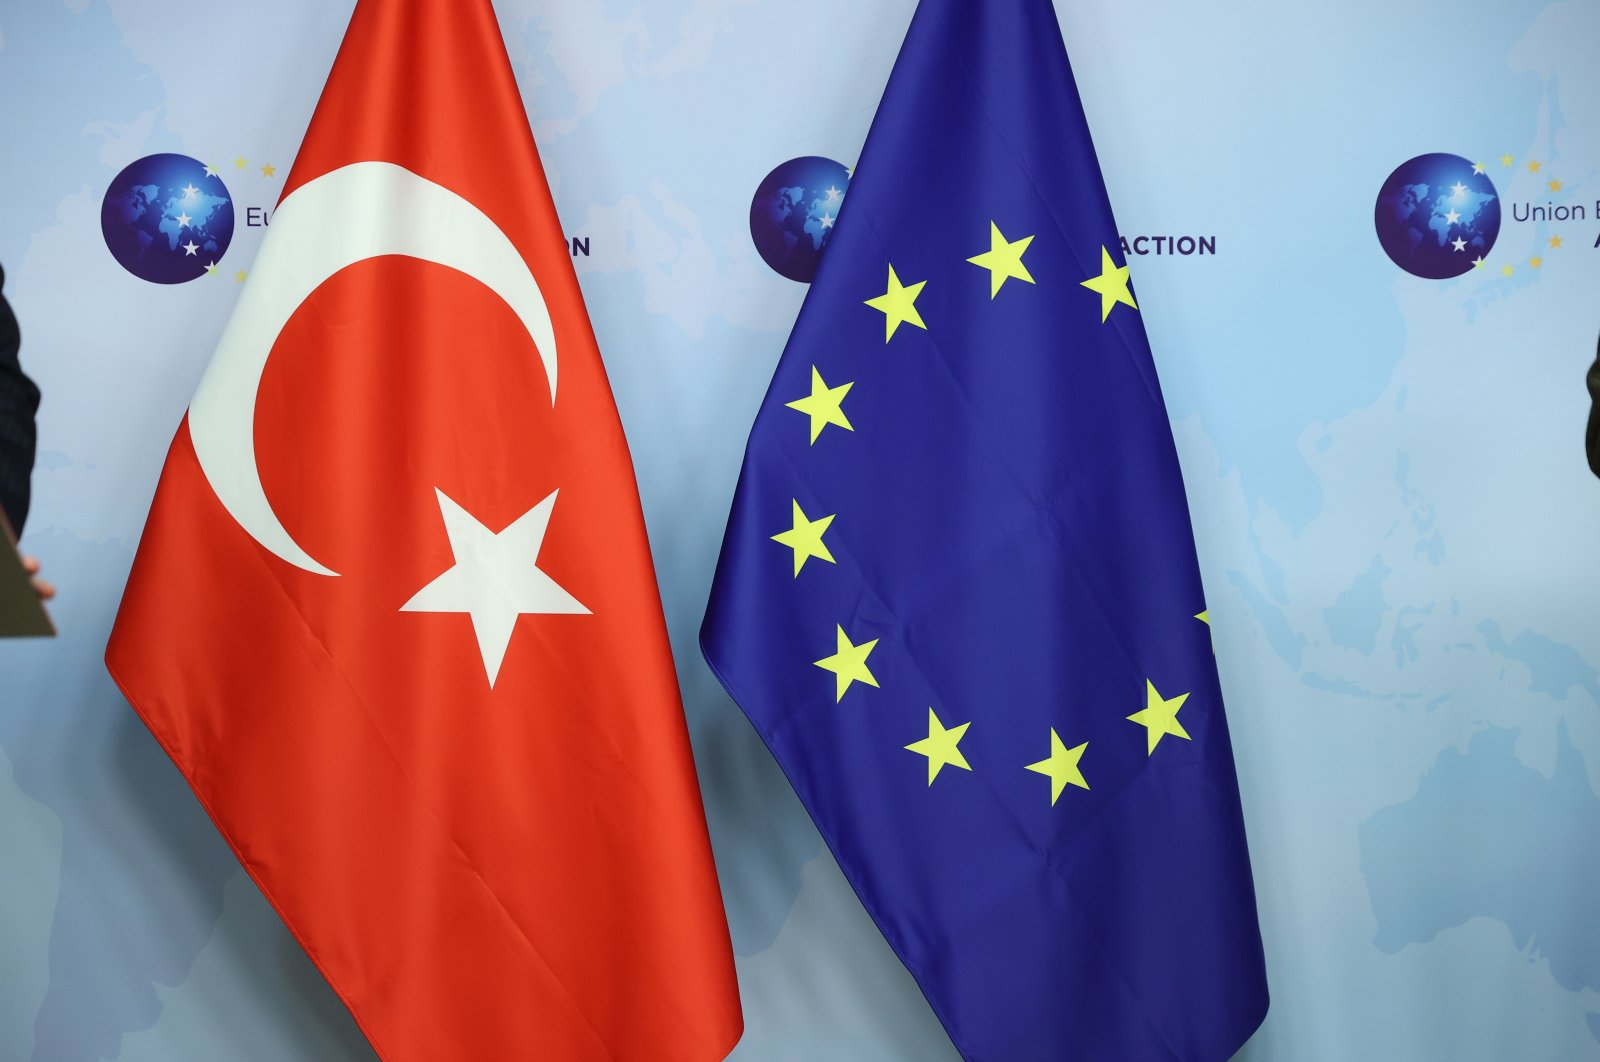 The flags of Turkey (L) and the EU are seen in Brussels during Foreign Minister Mevlüt Çavuşoğlu's meeting with EU foreign policy chief Josep Borrell, Belgium, Jan. 21, 2021. (AA Photo)